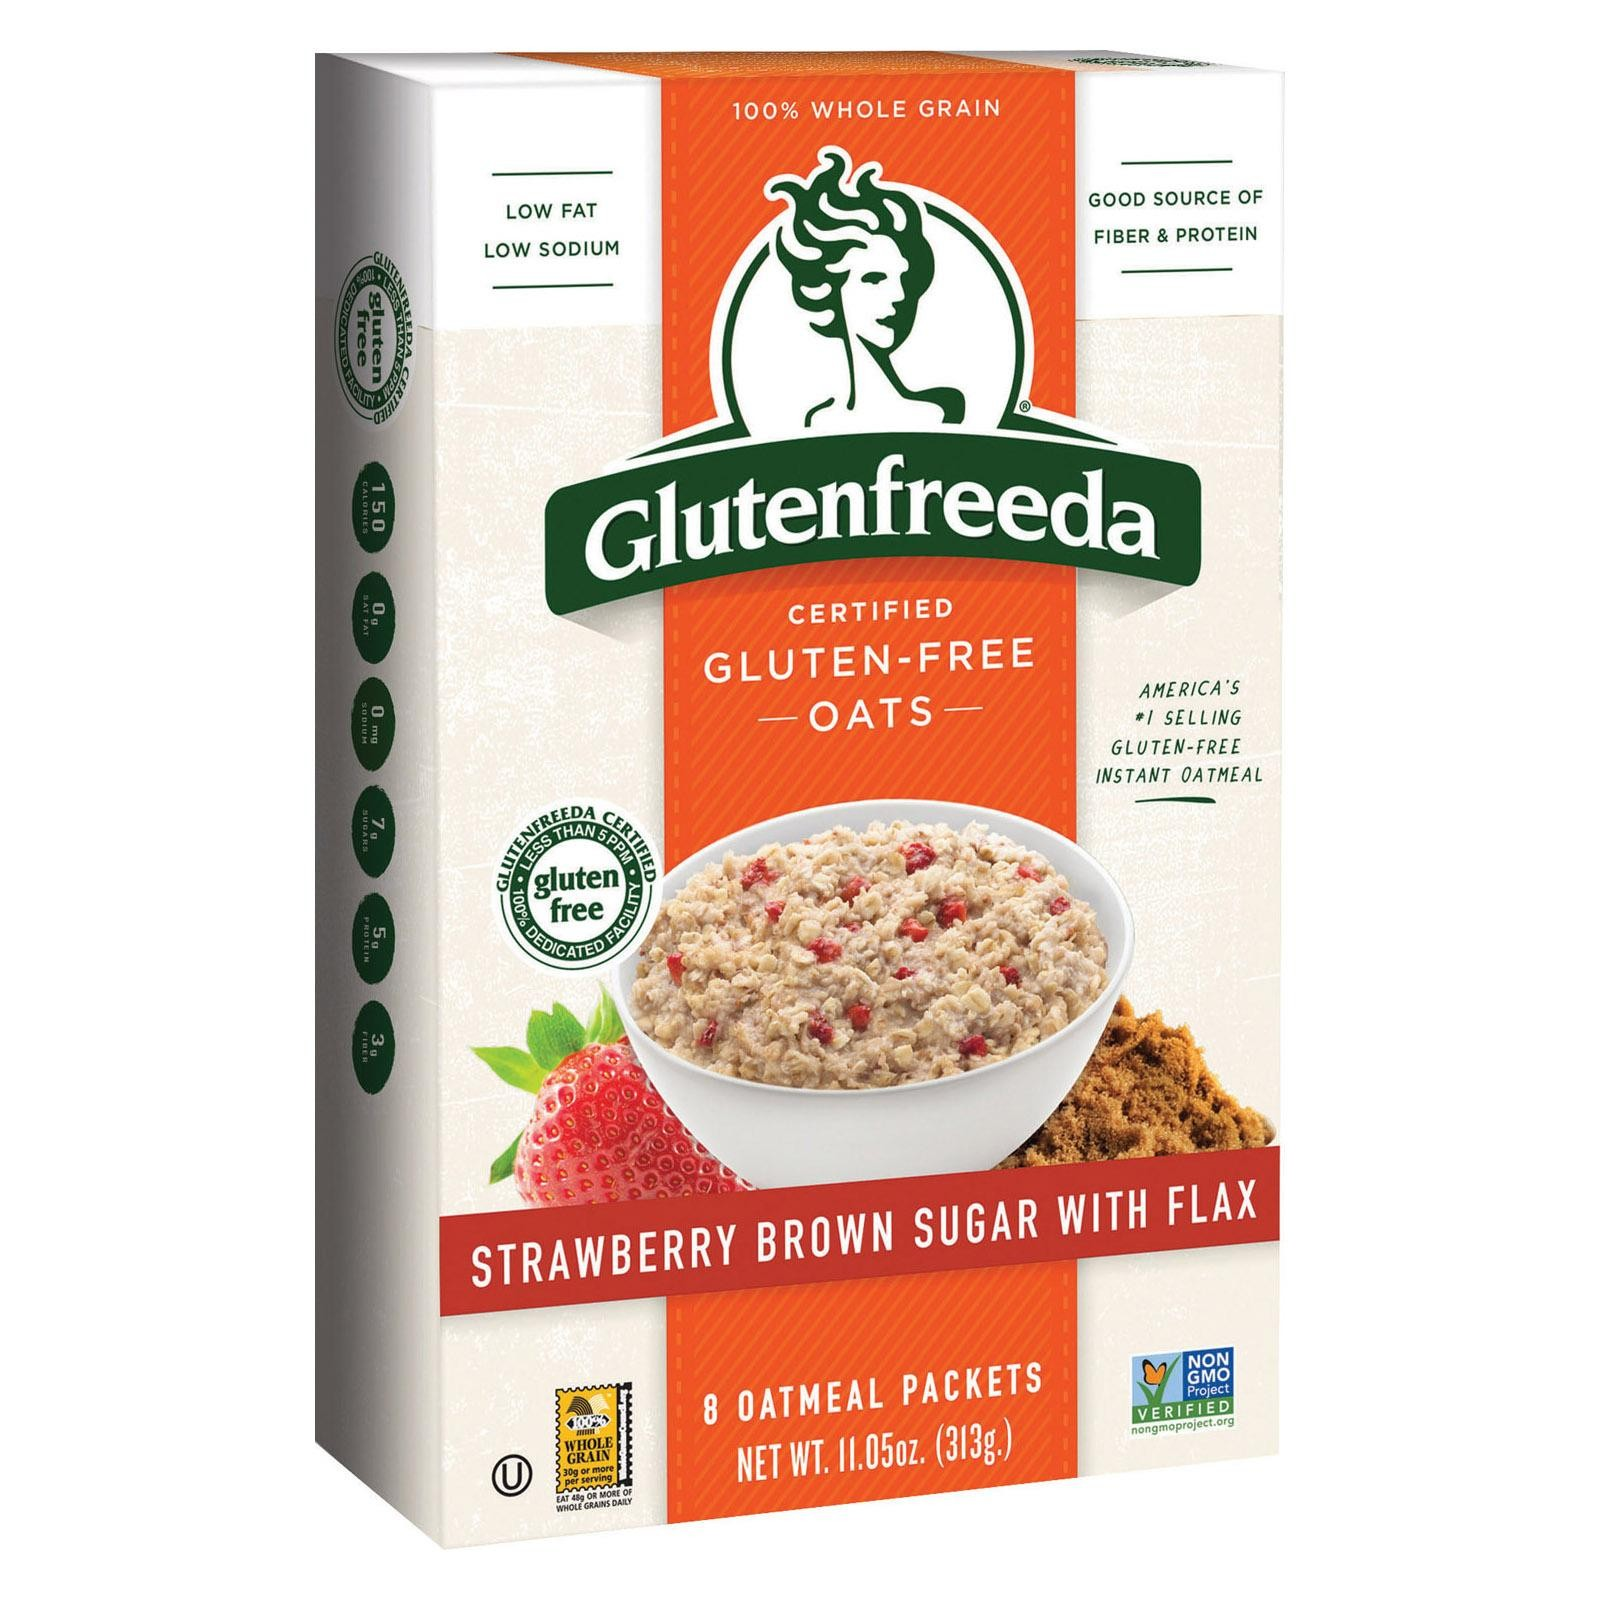 Gluten Freeda Instant Oatmeal - Strawberries And Brown Sugar - Pack of 8 - 10.2 Oz.